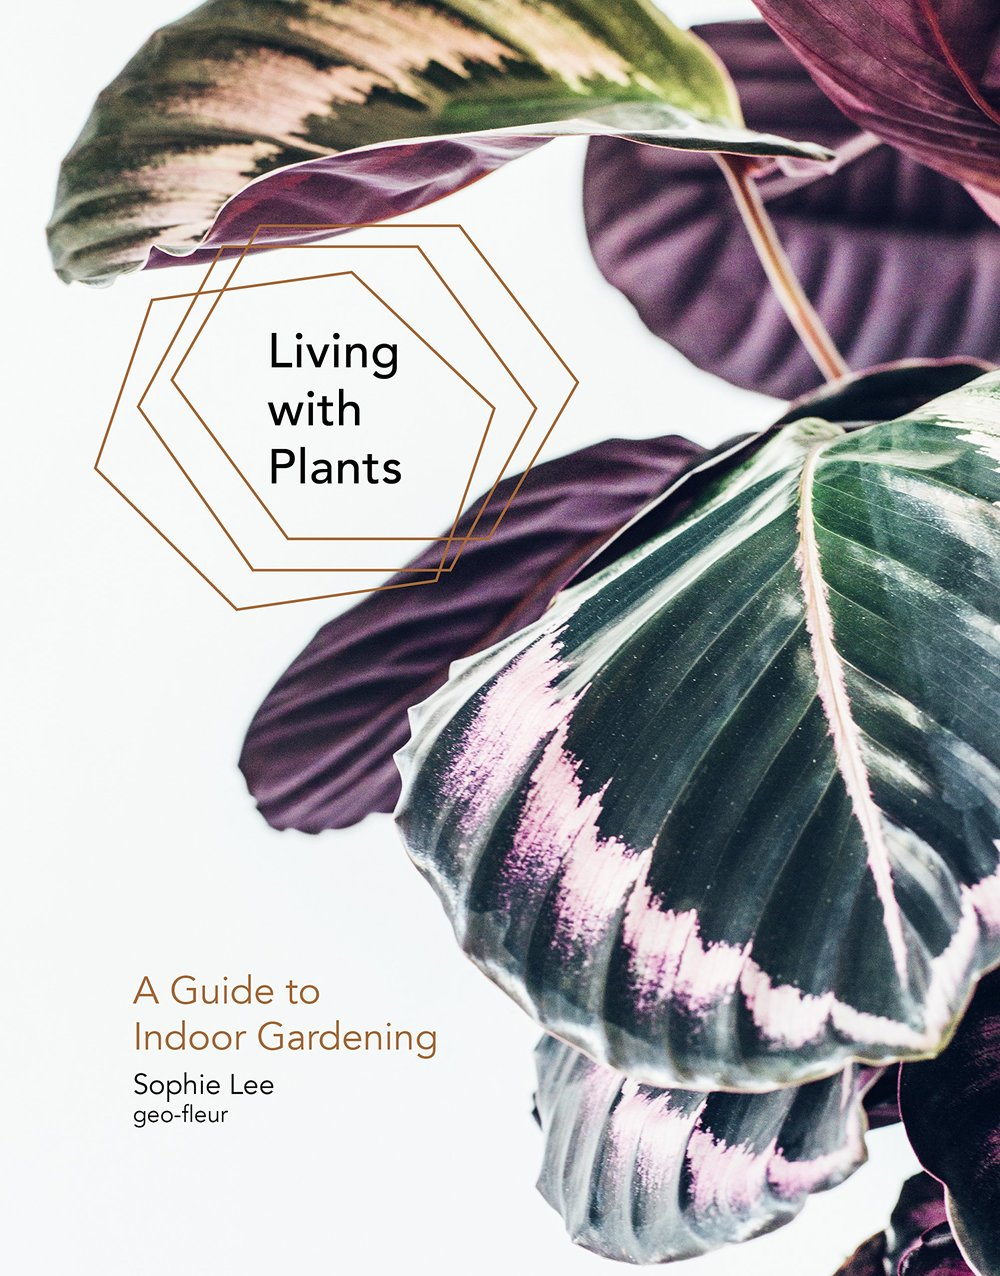 Copy of Living with Plants